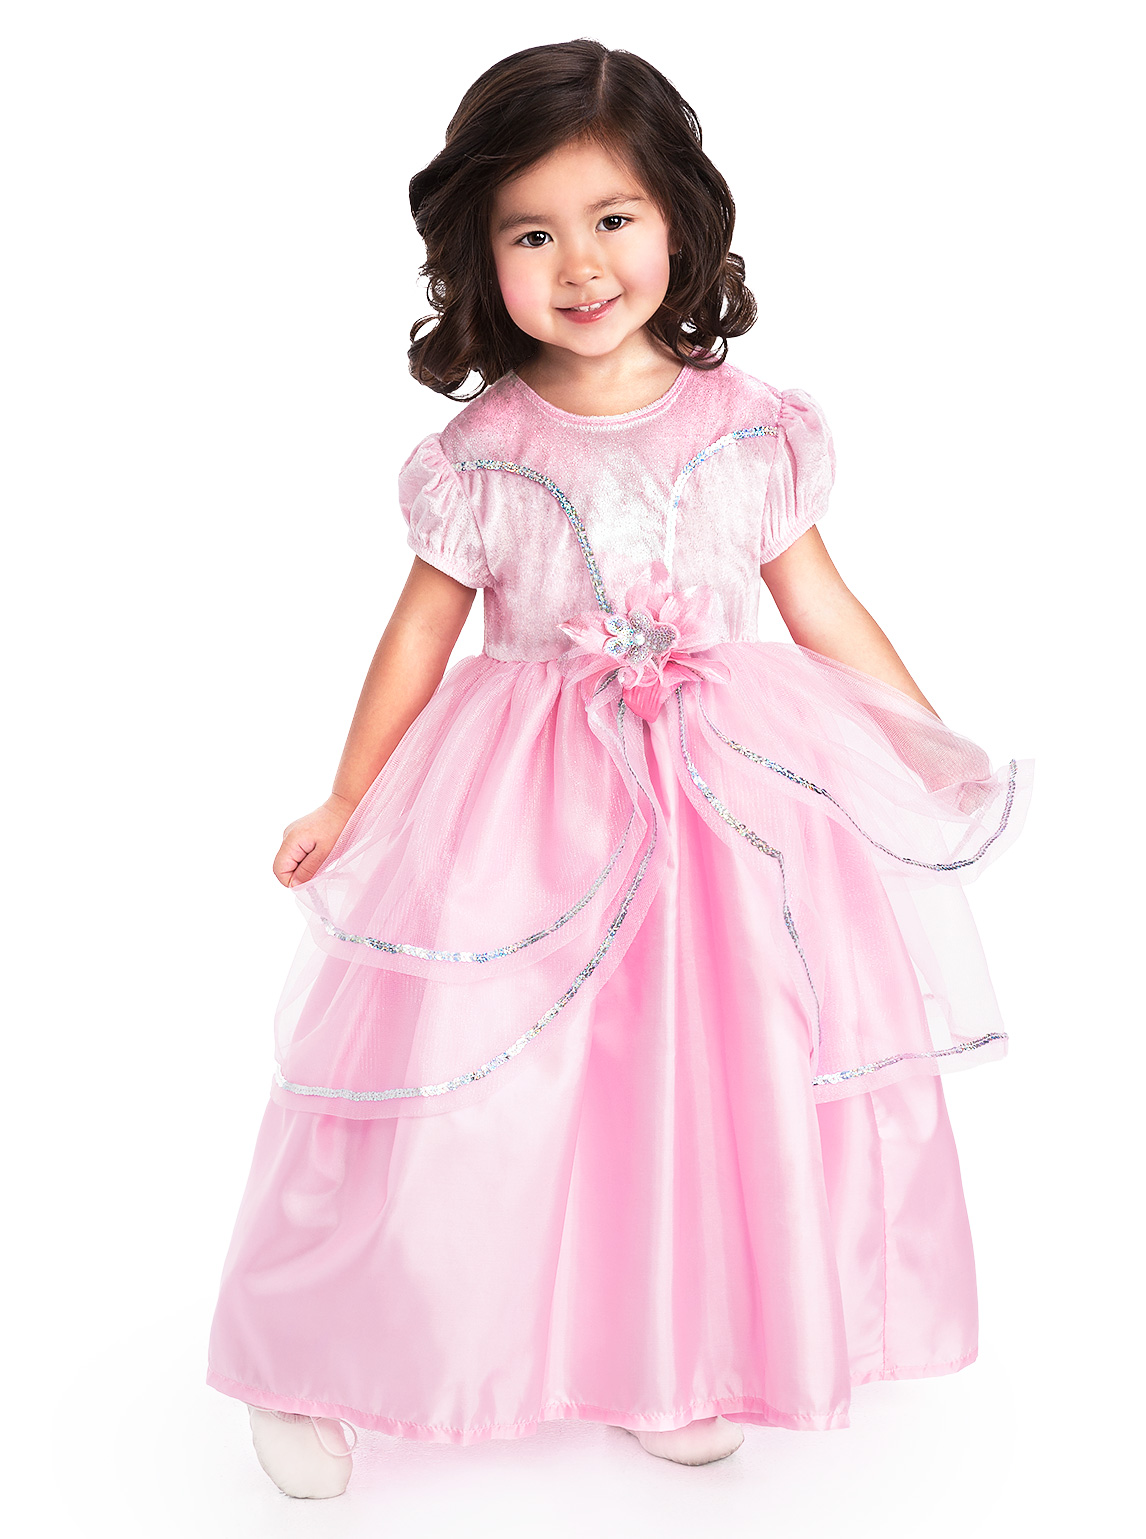 Royal Pink Princess Dress - New! - Everything Princesses